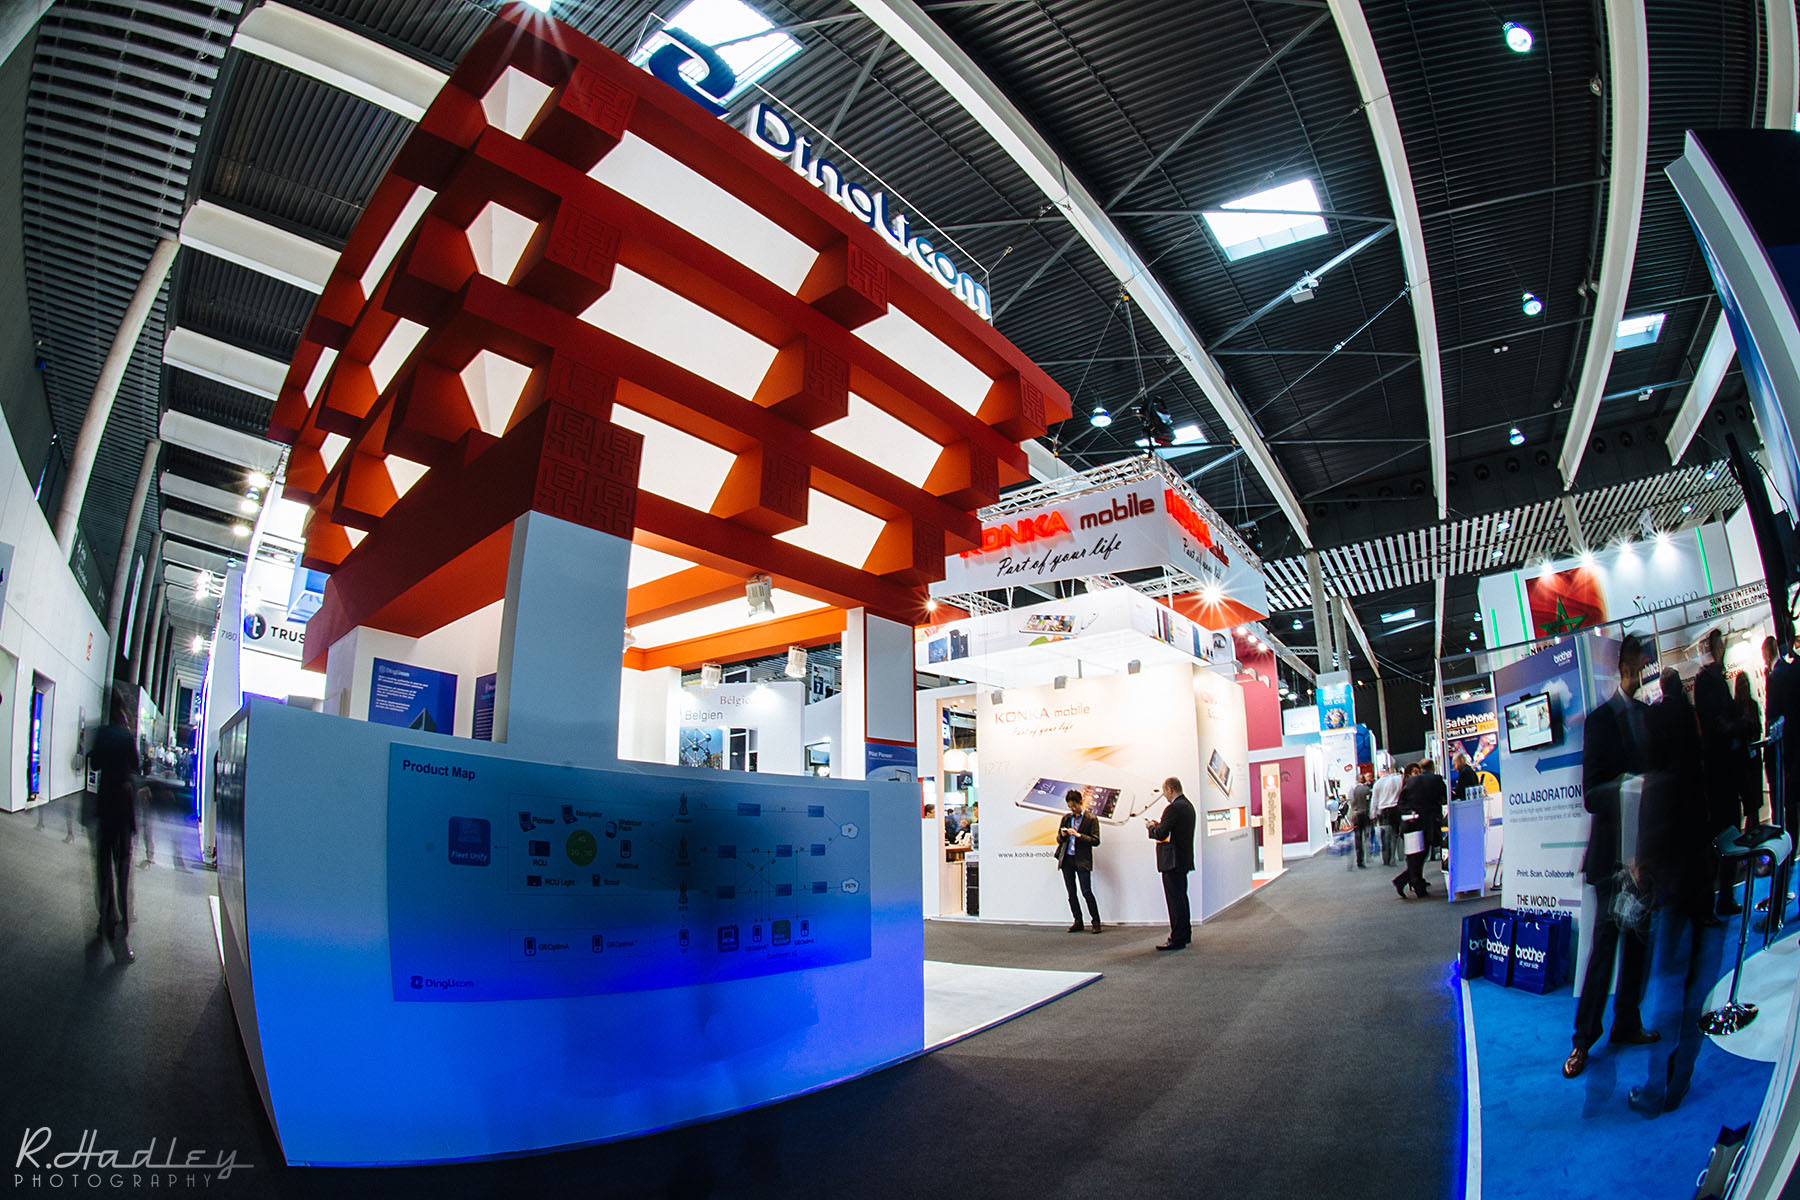 WMC - Event photography at the Mobile World Congress in Barcelona